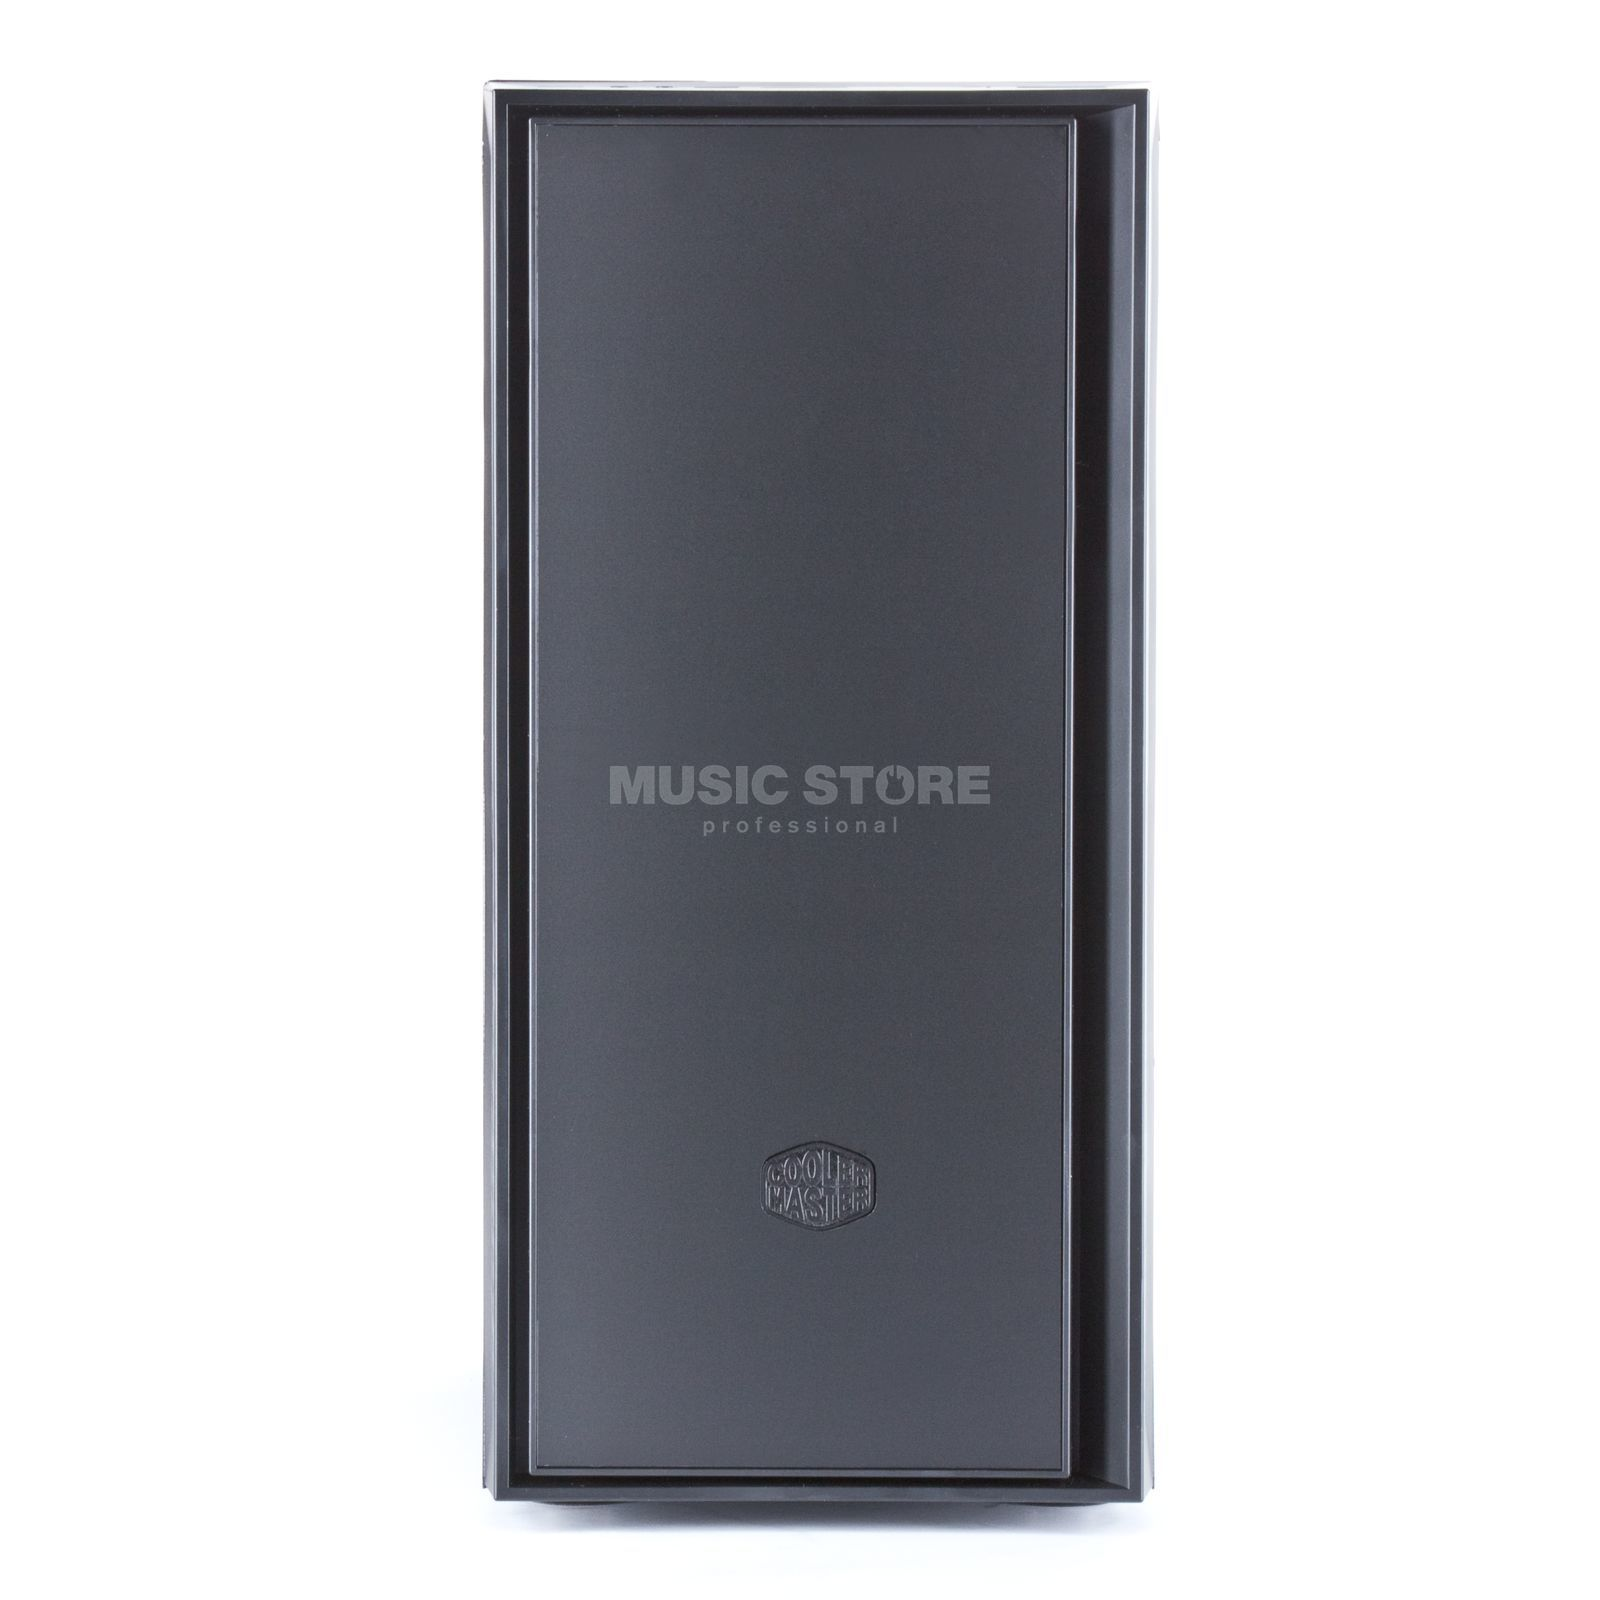 MUSIC STORE Audio PC 2016 PRO Product Image